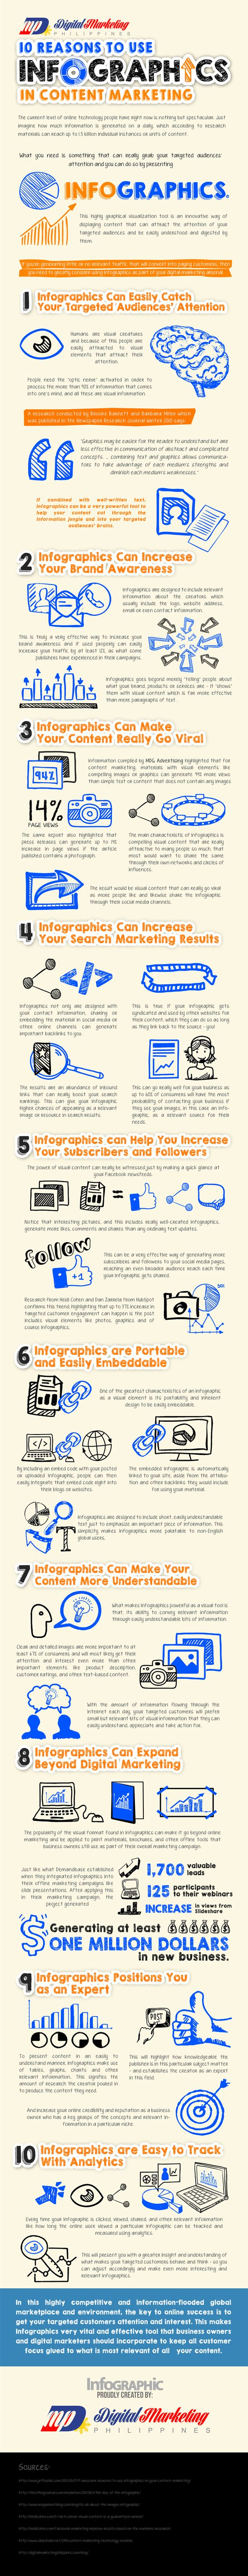 infografia_infografia_marketing contenidos